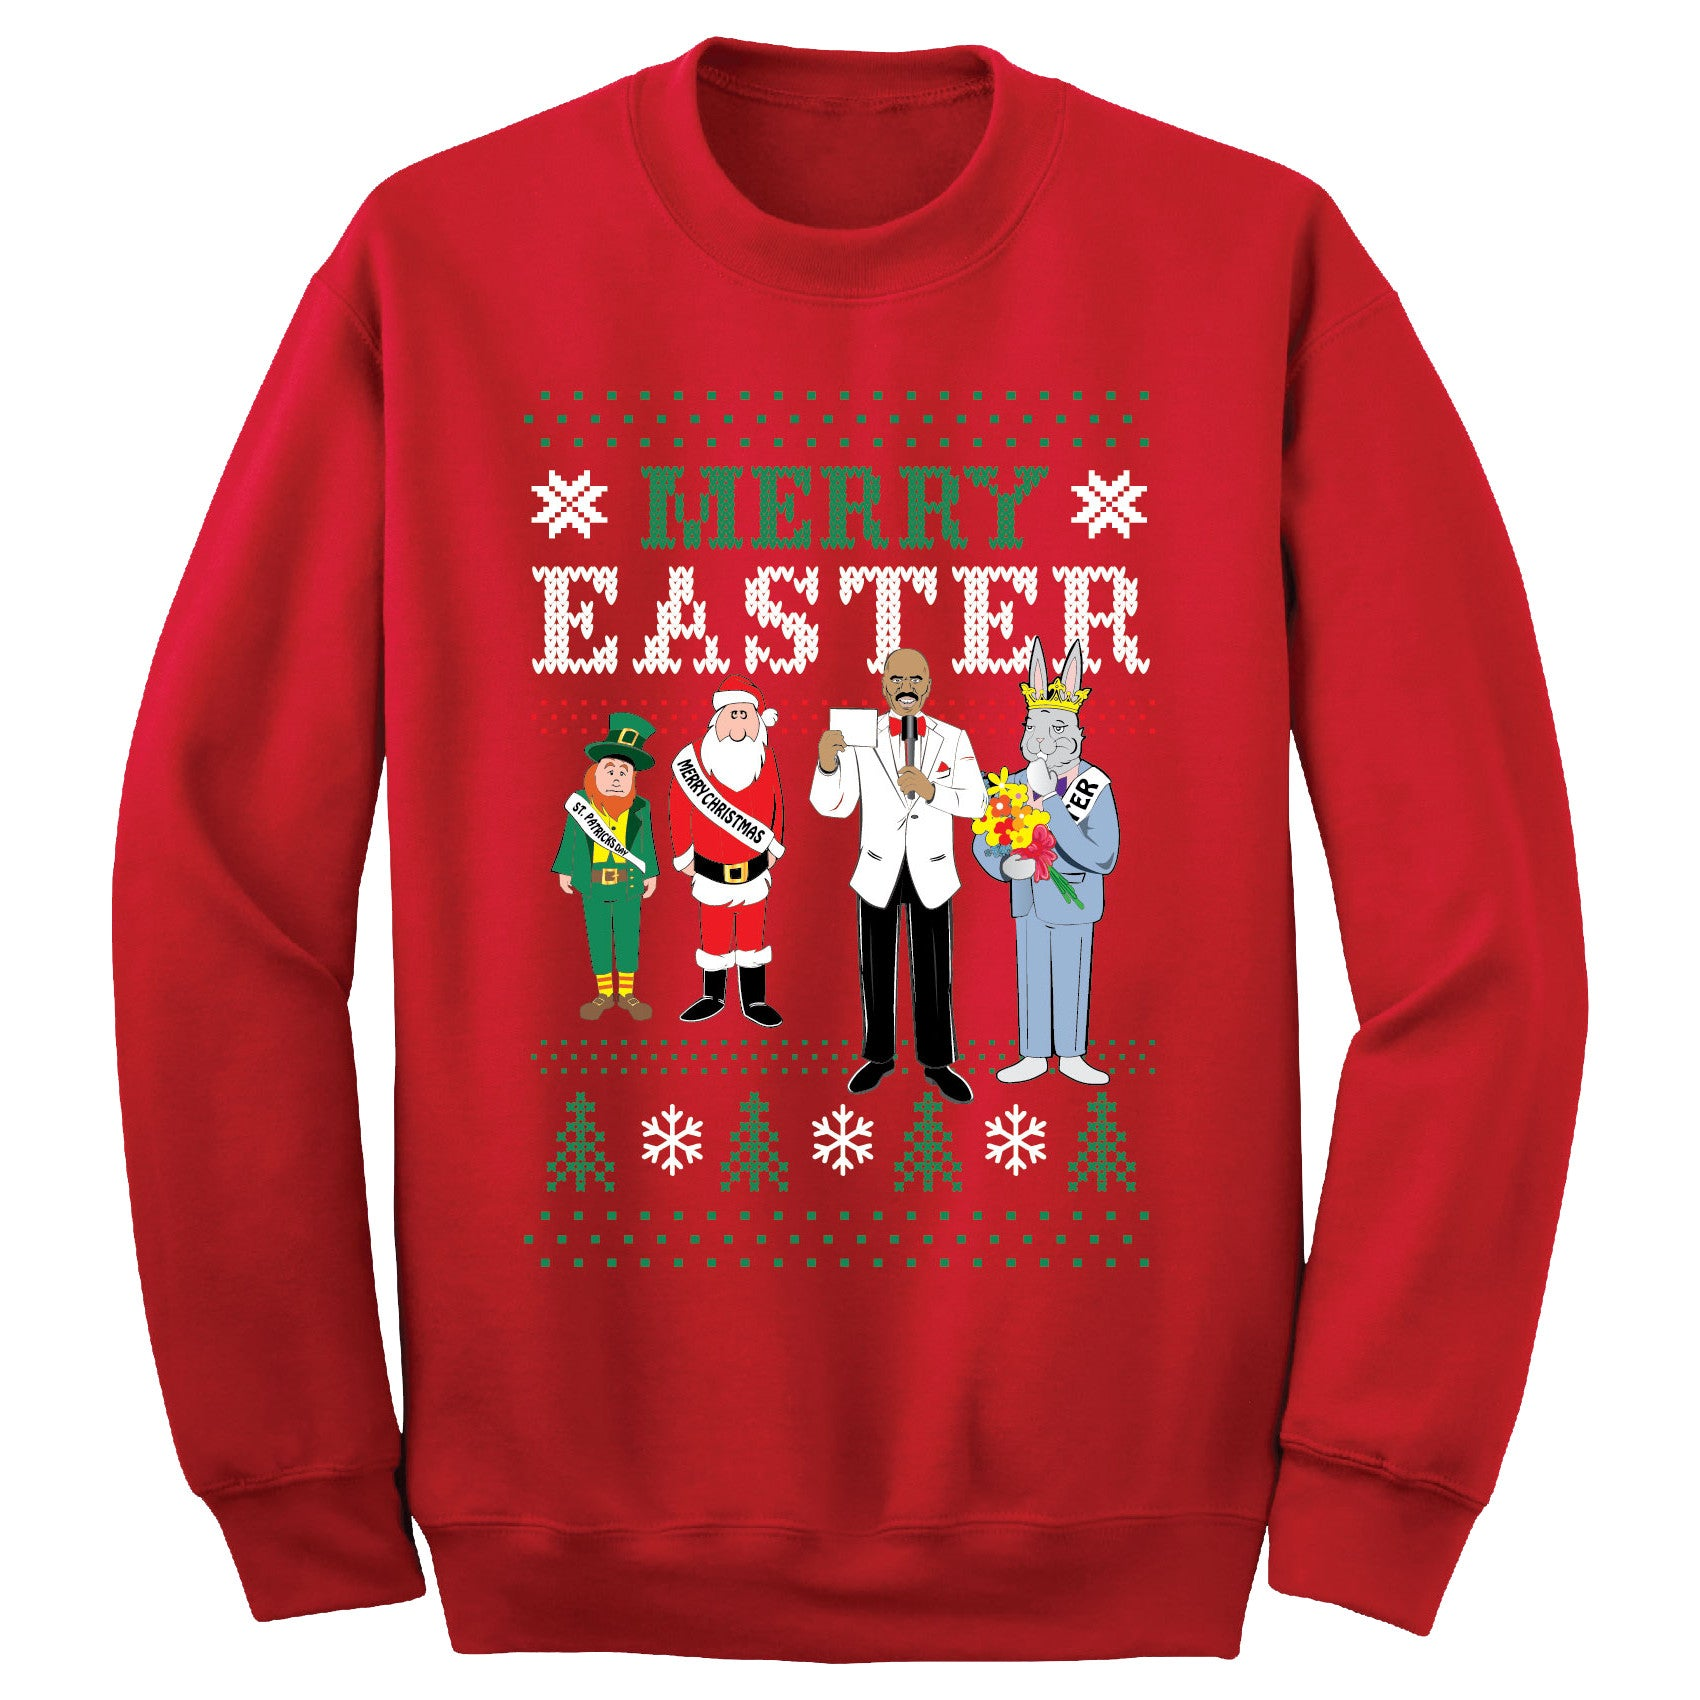 Merry Easter Sweatshirt (Red)